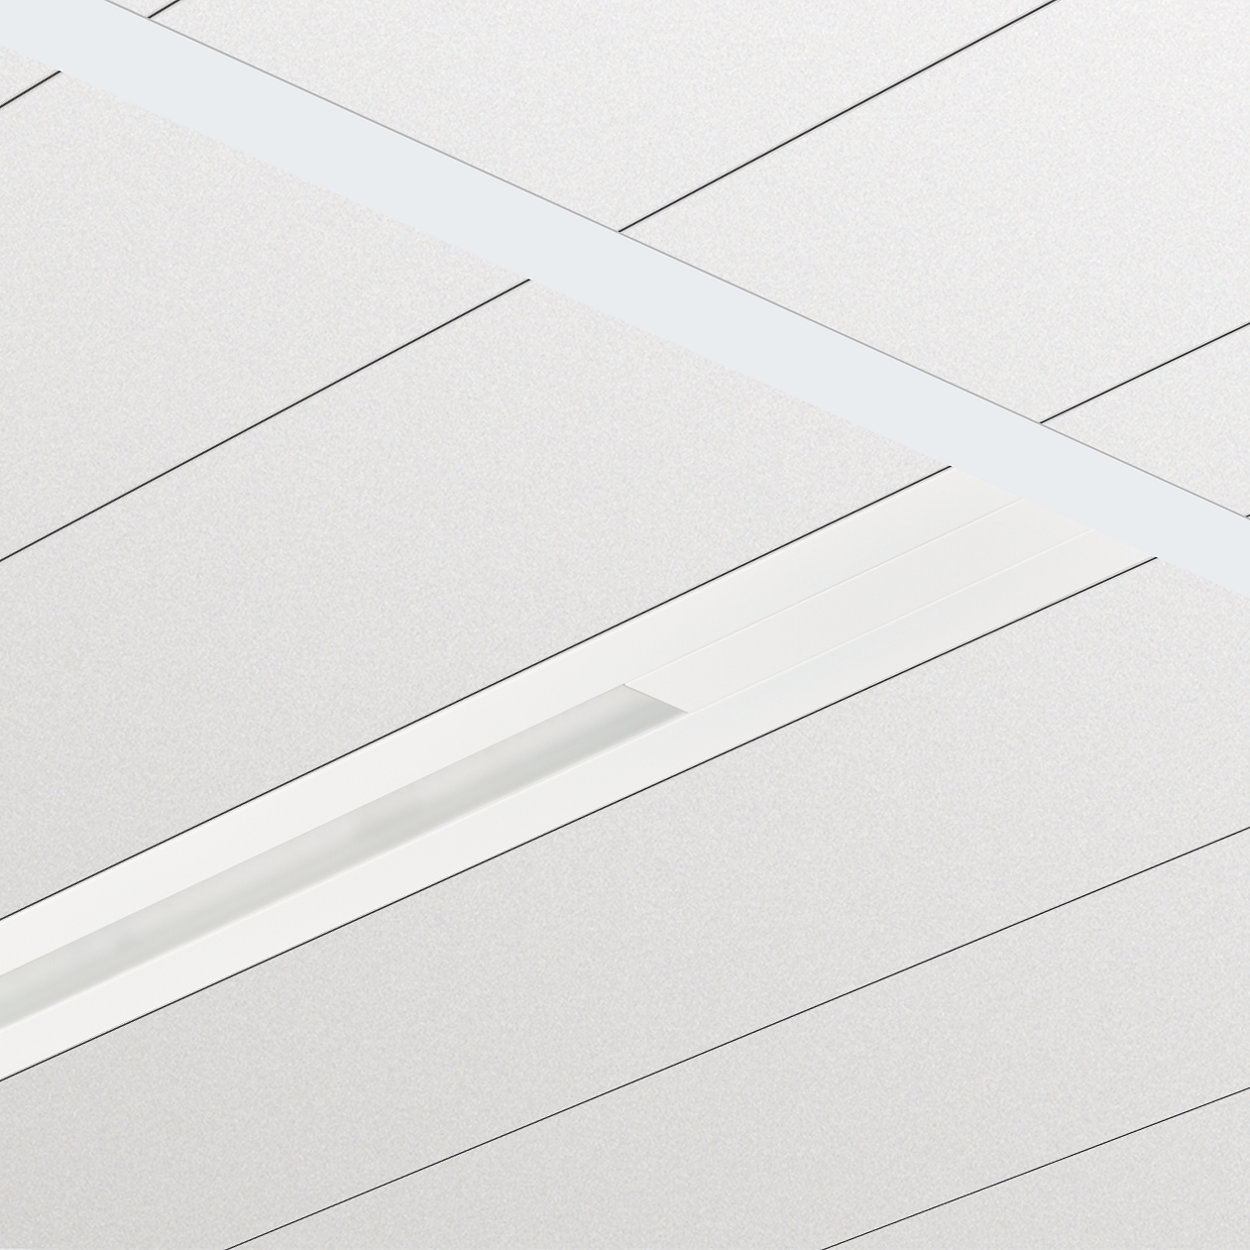 TrueLine, recessed - True line of light: elegant, energy-efficient and compliant with office lighting norms